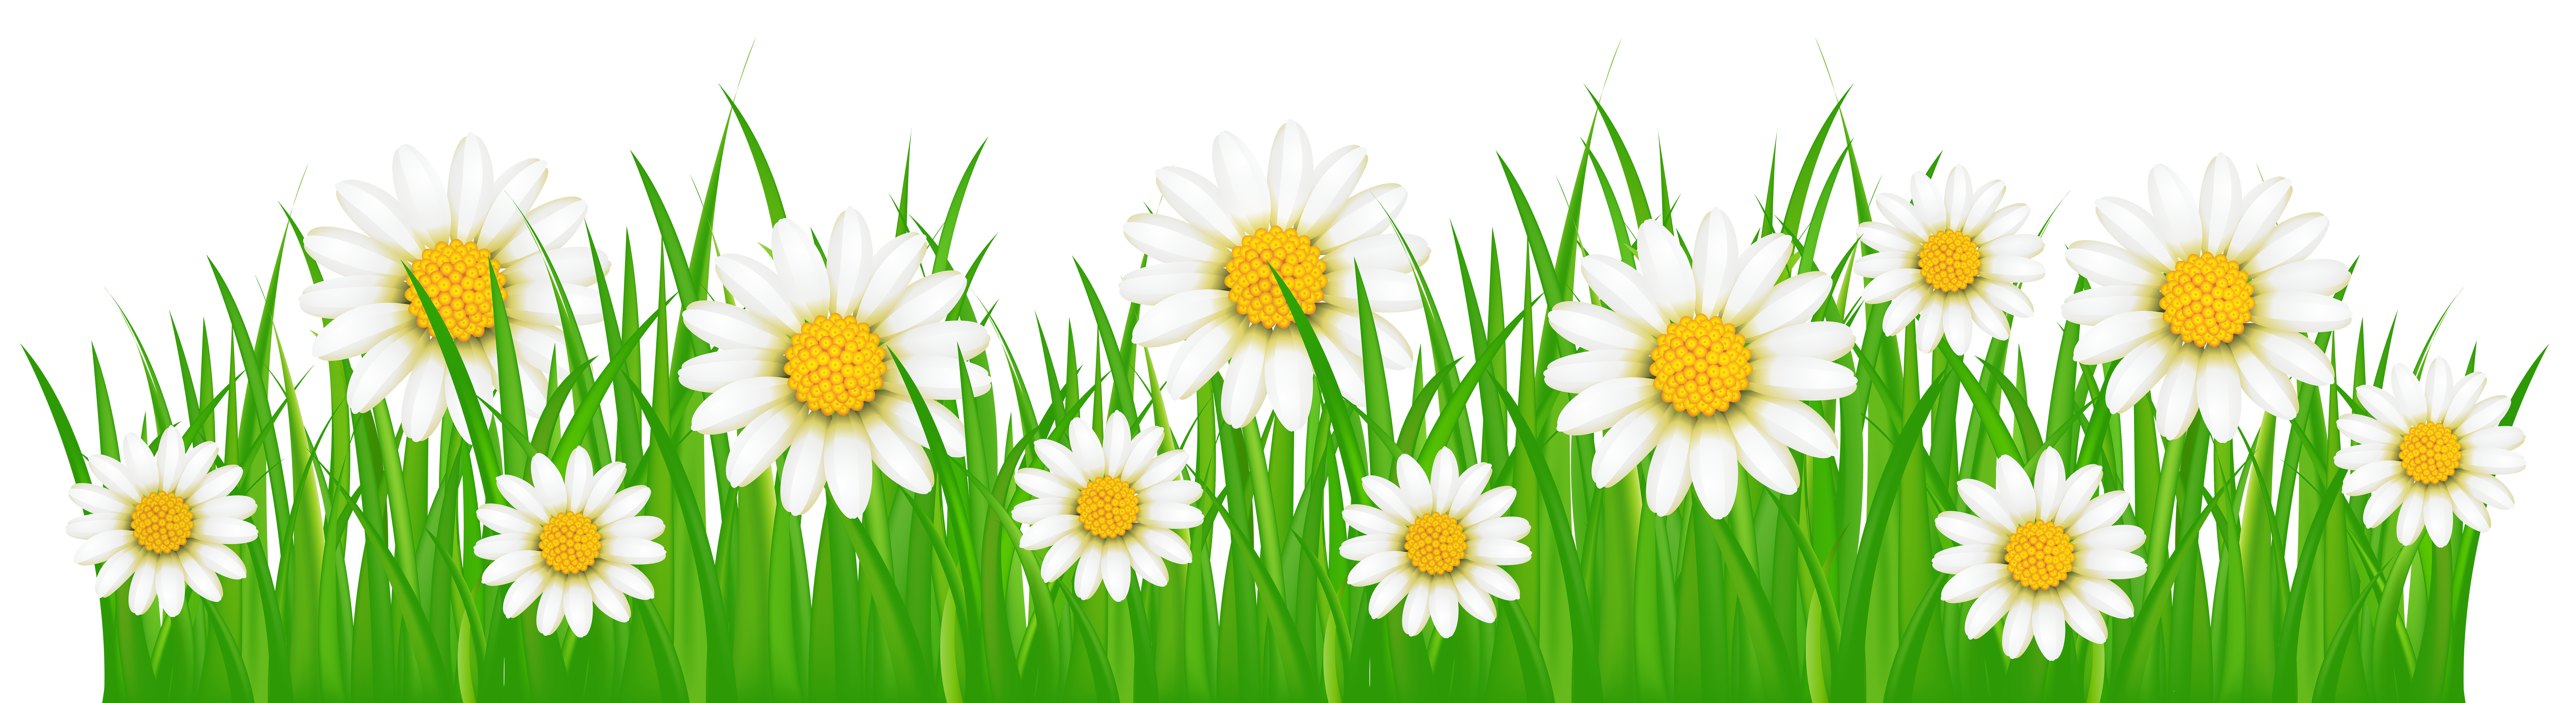 Clipart grass plains.  collection of flower